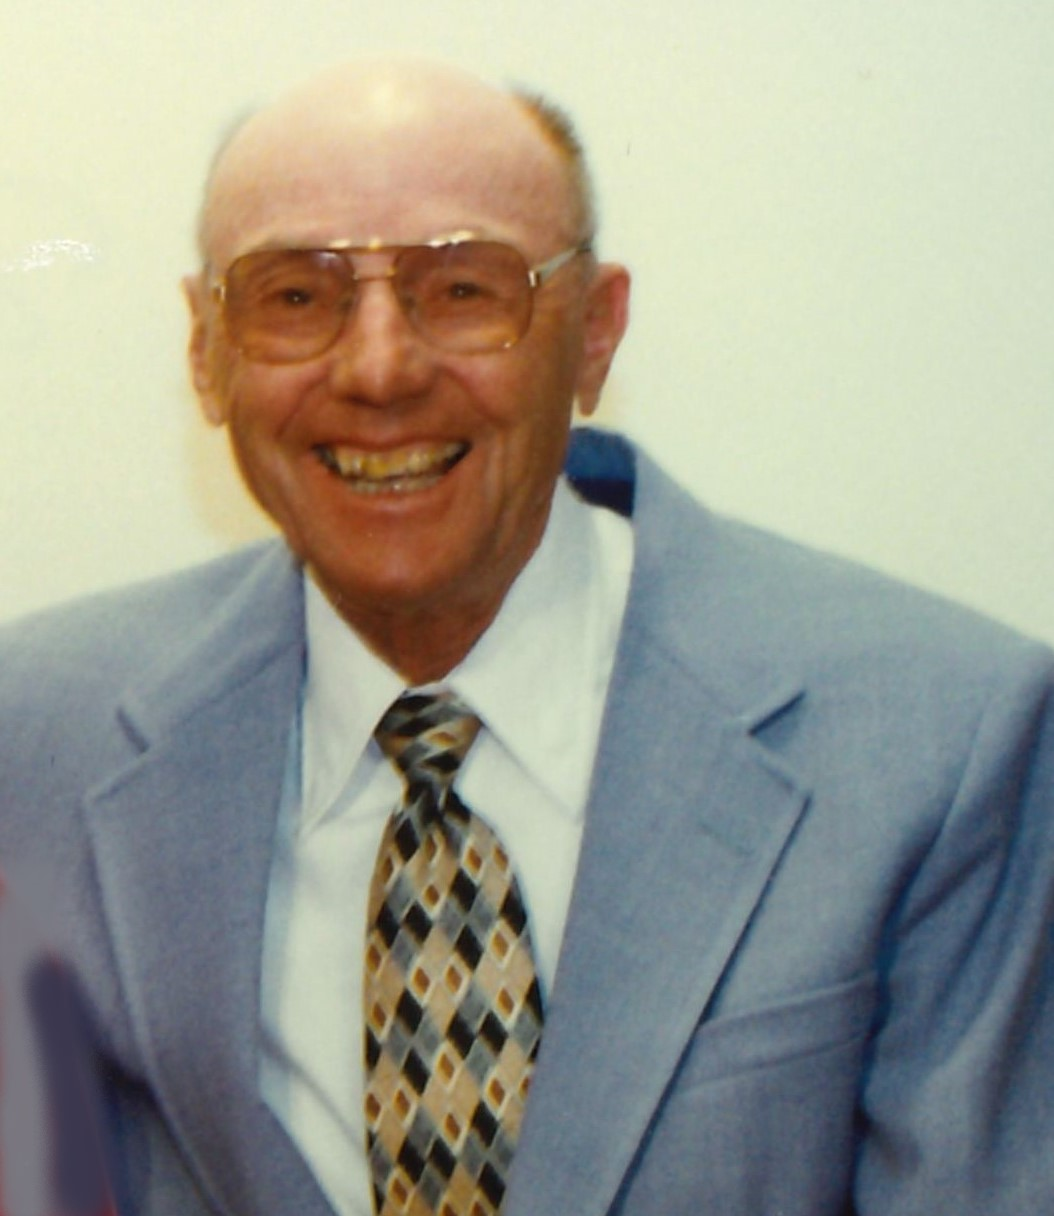 Funeral Services for Theodore Hanich, age 99